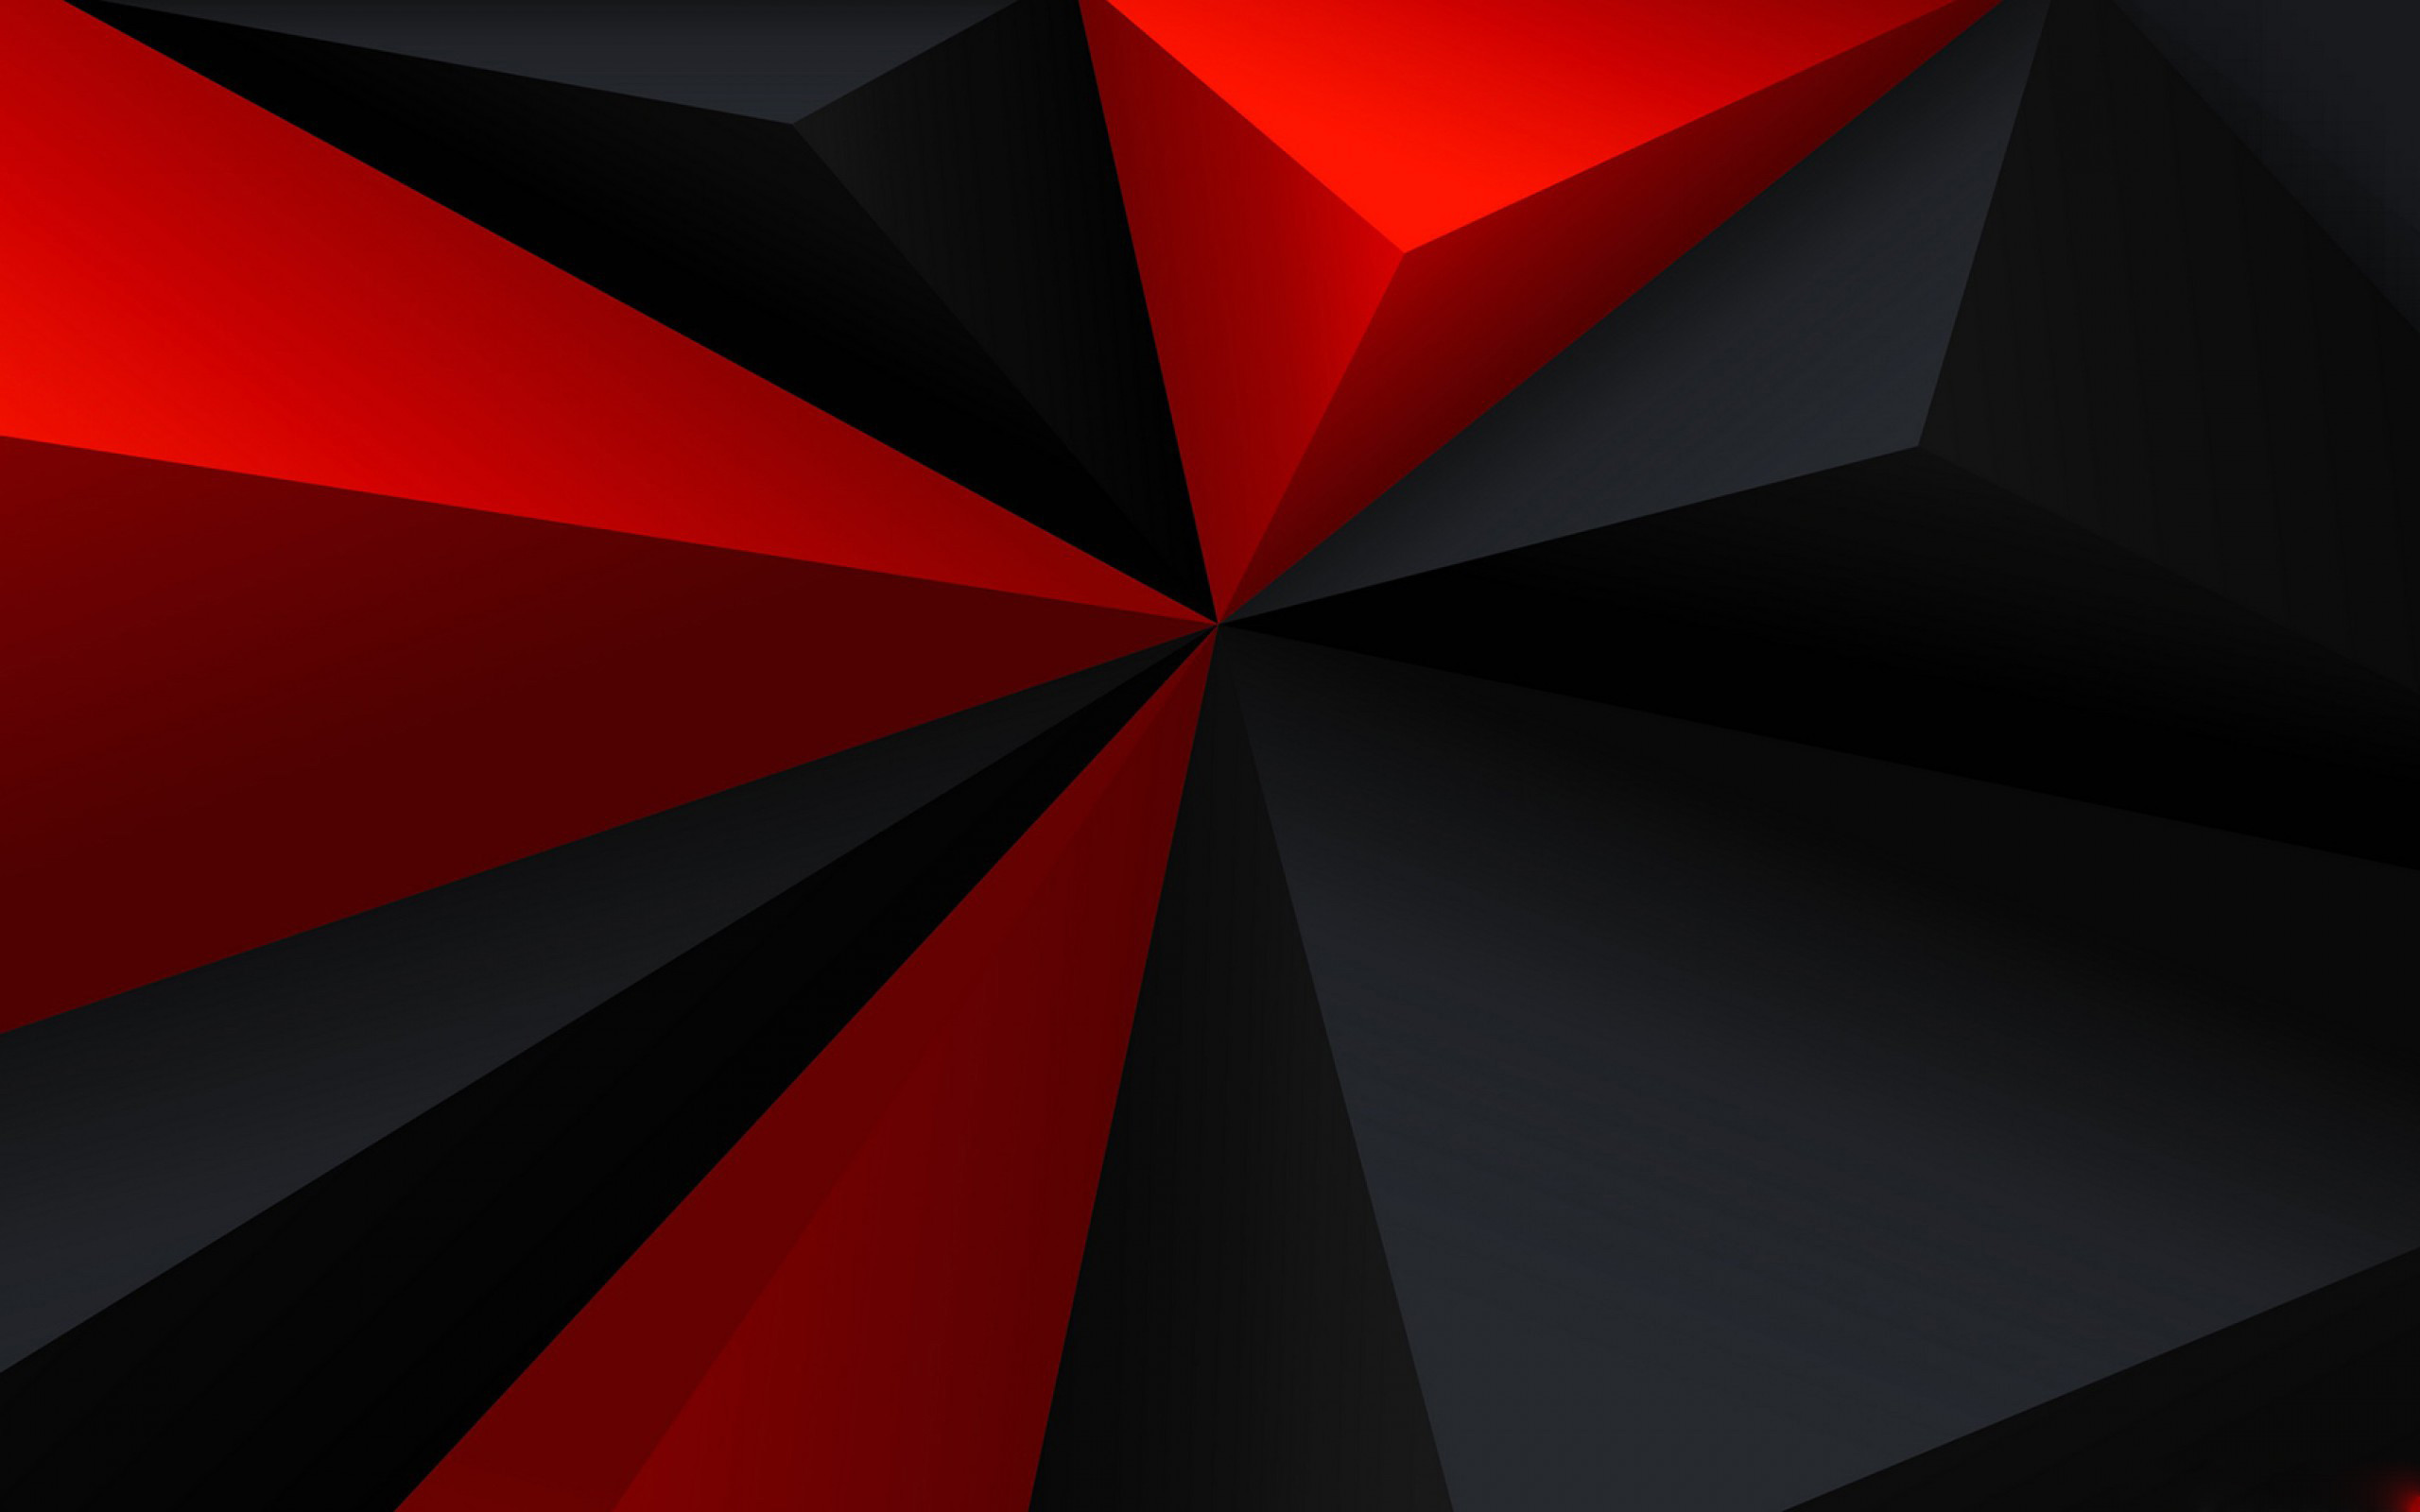 Red-black-wallpaper-new-collection